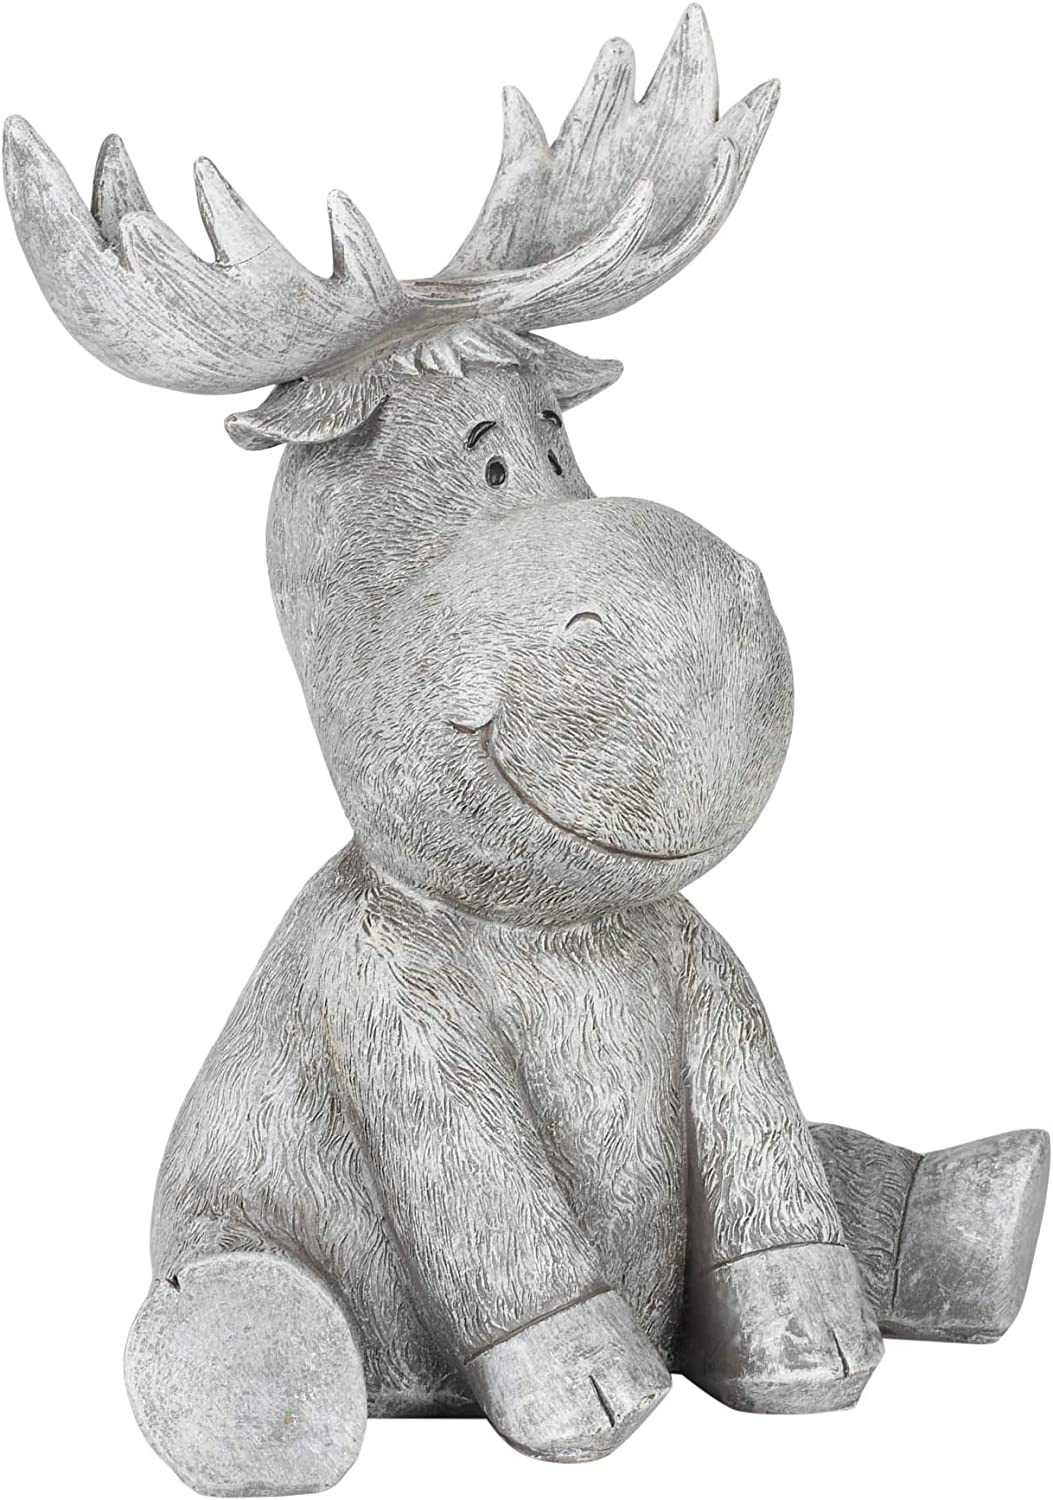 Roman Garden Moose Statue 9 5 H Pudgy Pals Collection Resin And Dolomite Decorative Garden Gift Home Outdoor Decor Durable Long Lasting Kitchen Dining